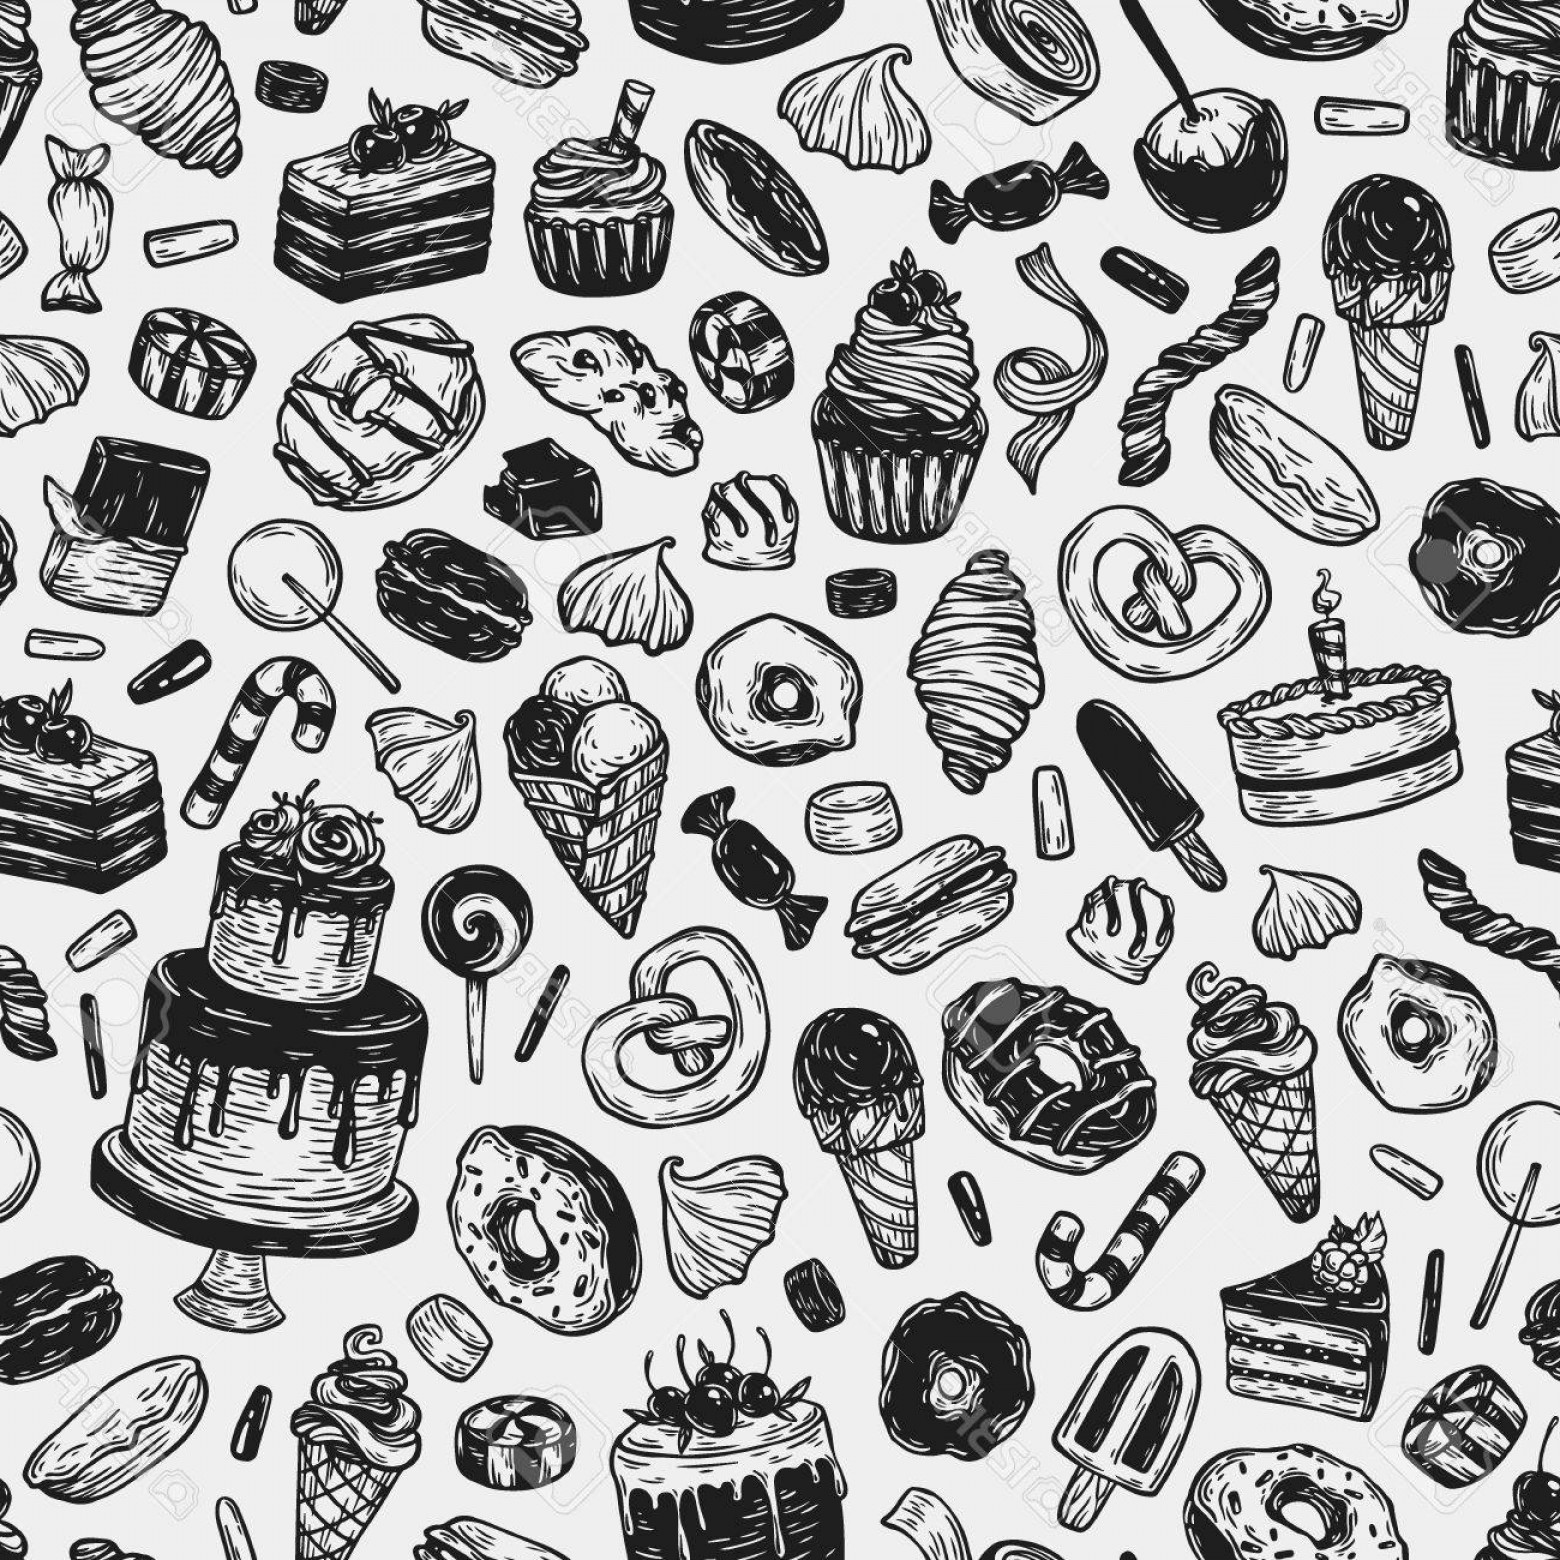 Black And White Candy Vector: Photostock Vector Vector Sweets Seamless Pattern With Sweets Pastry Sweetmeat Desserts Cakes Ice Cream Donuts Cupcakes